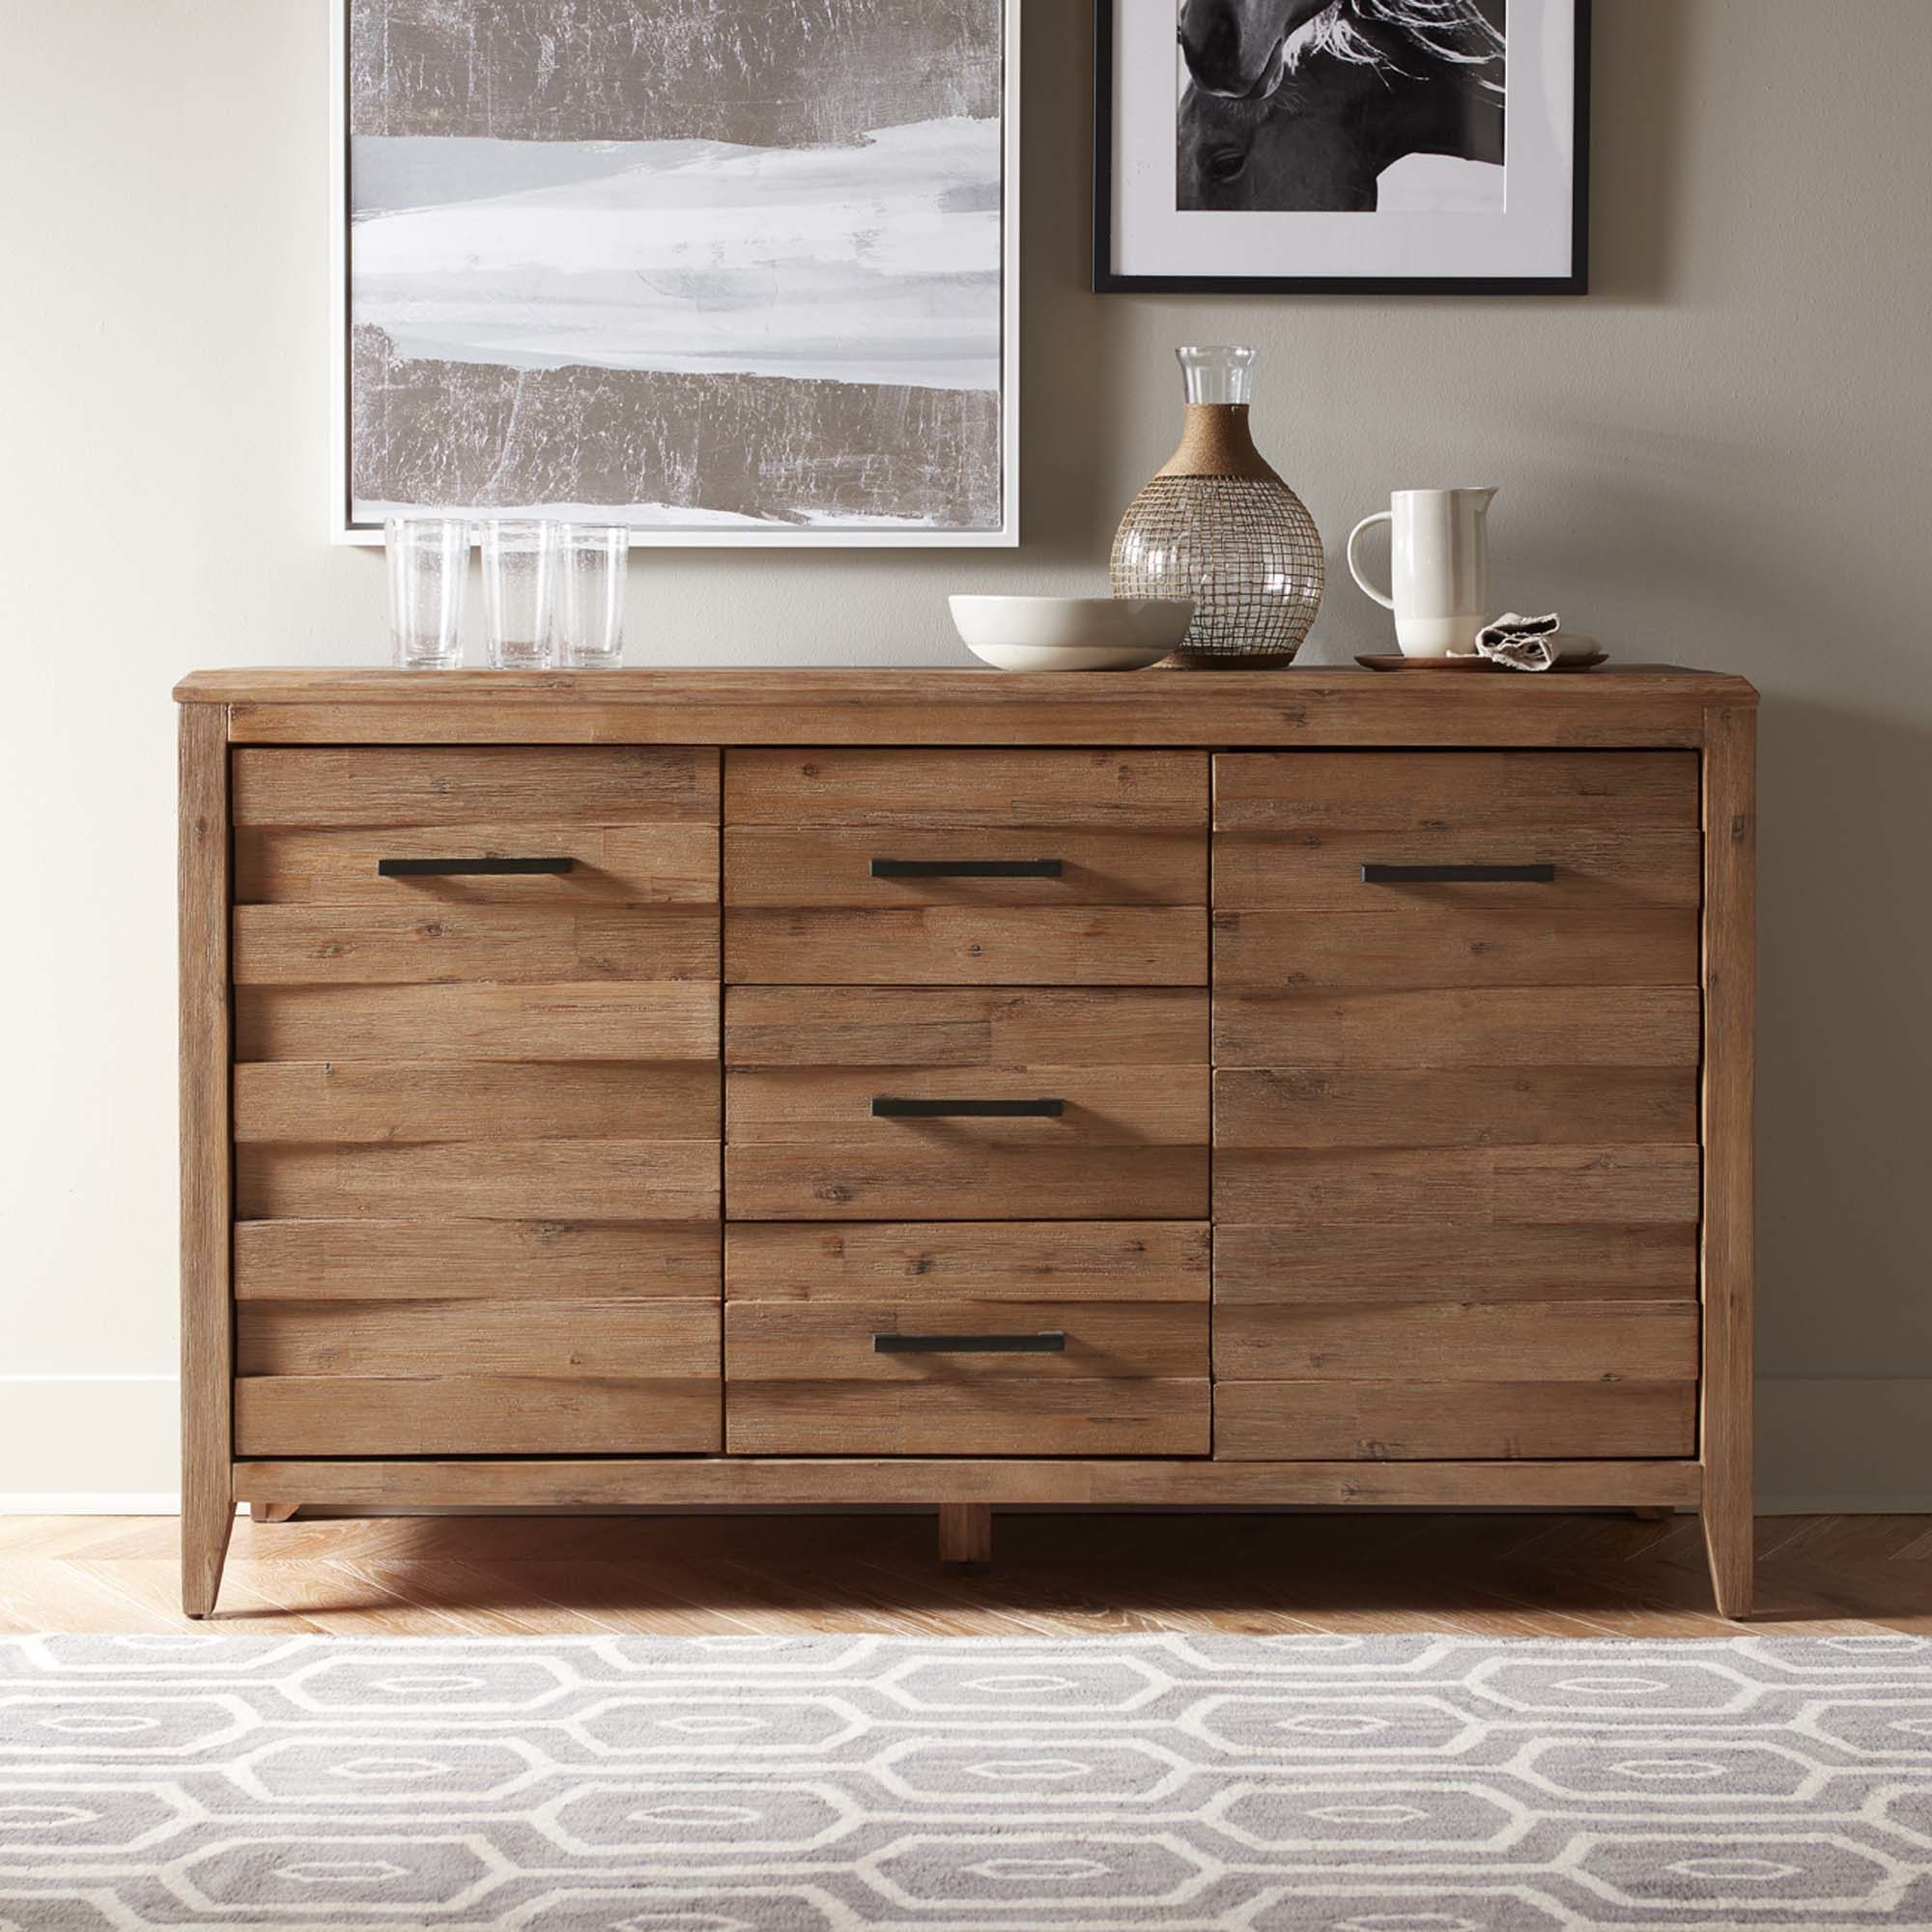 This Handsomely Built Acacia Wood Sideboard Features Rustic With Newest Saint Gratien Sideboards (View 17 of 20)